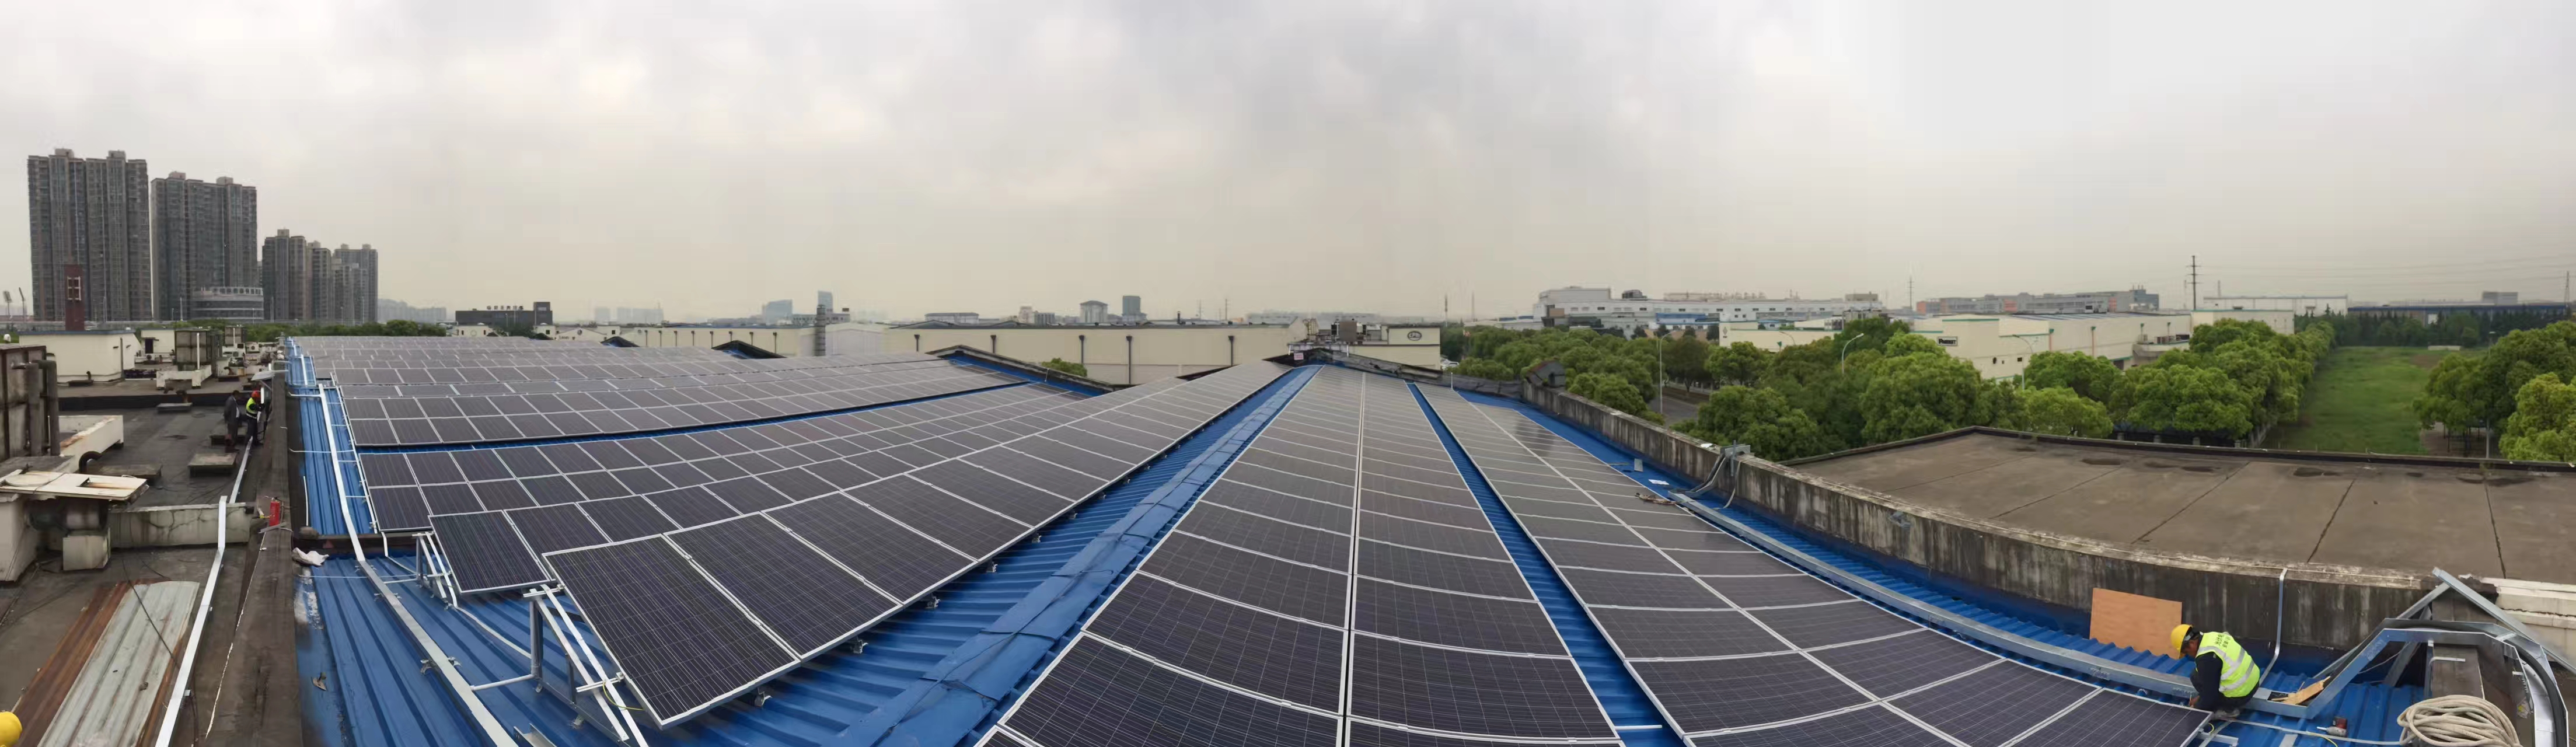 800KW PV Power System